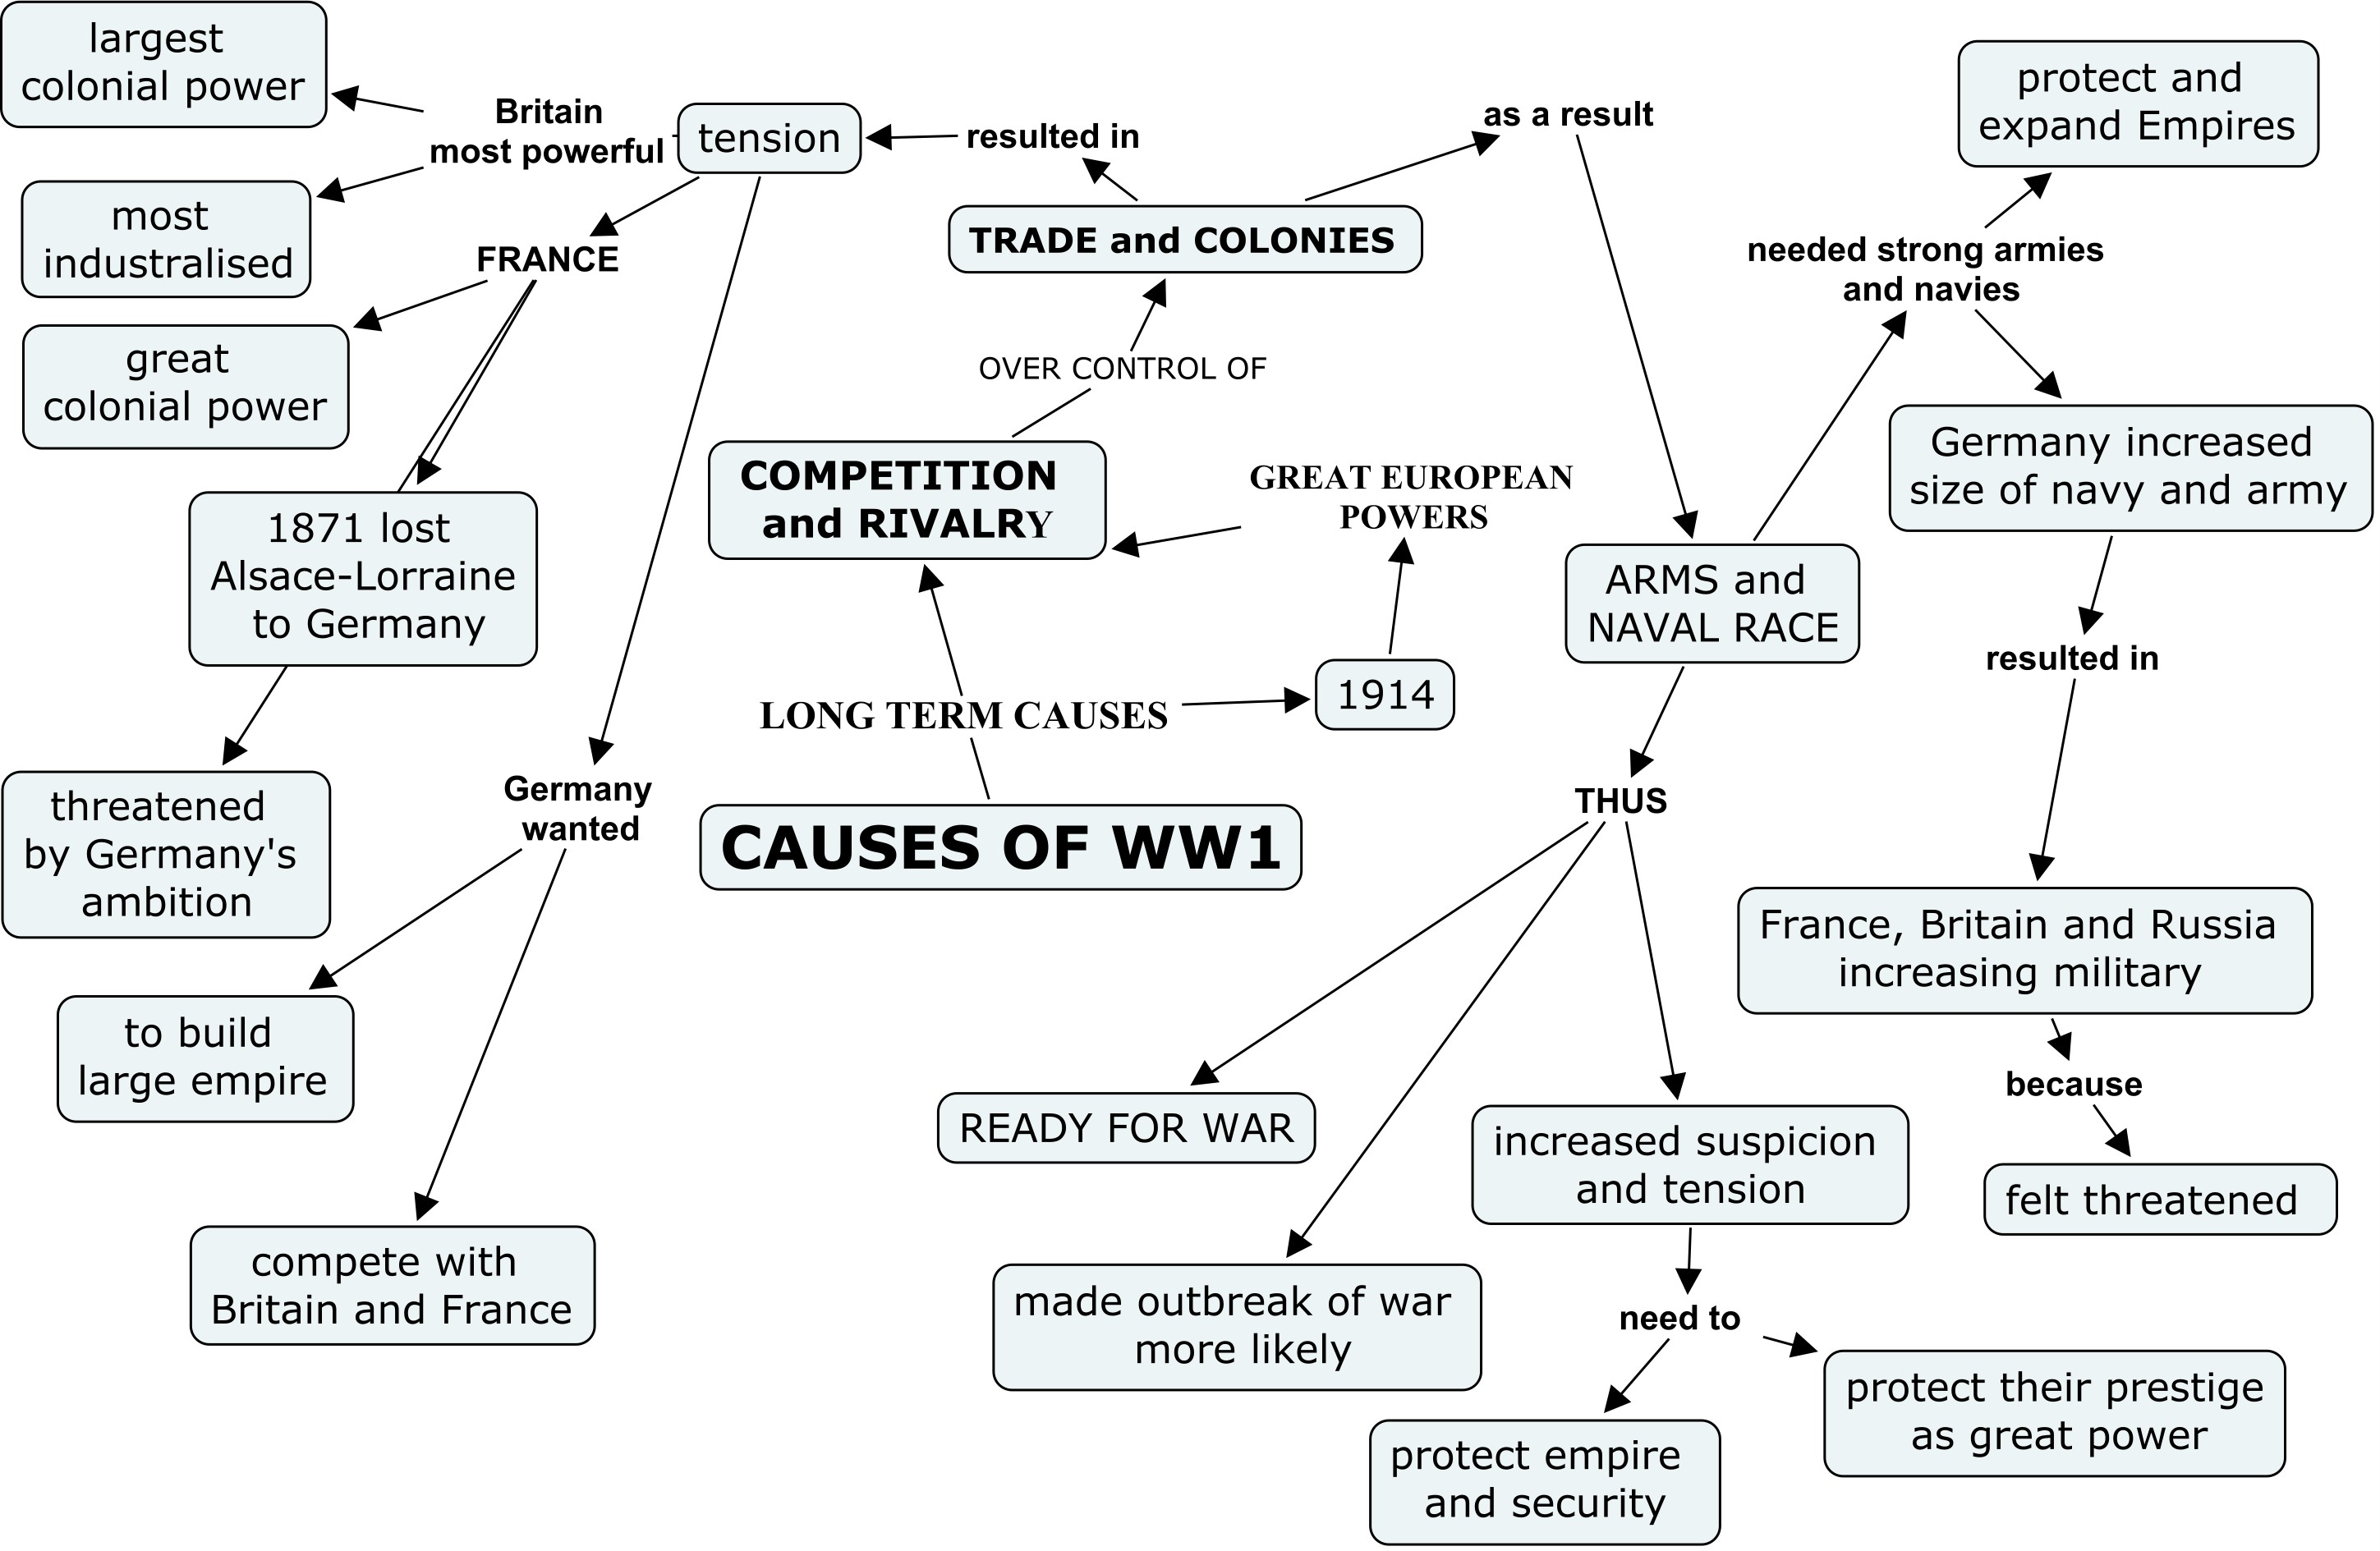 Short term causes of world war 1 timeline